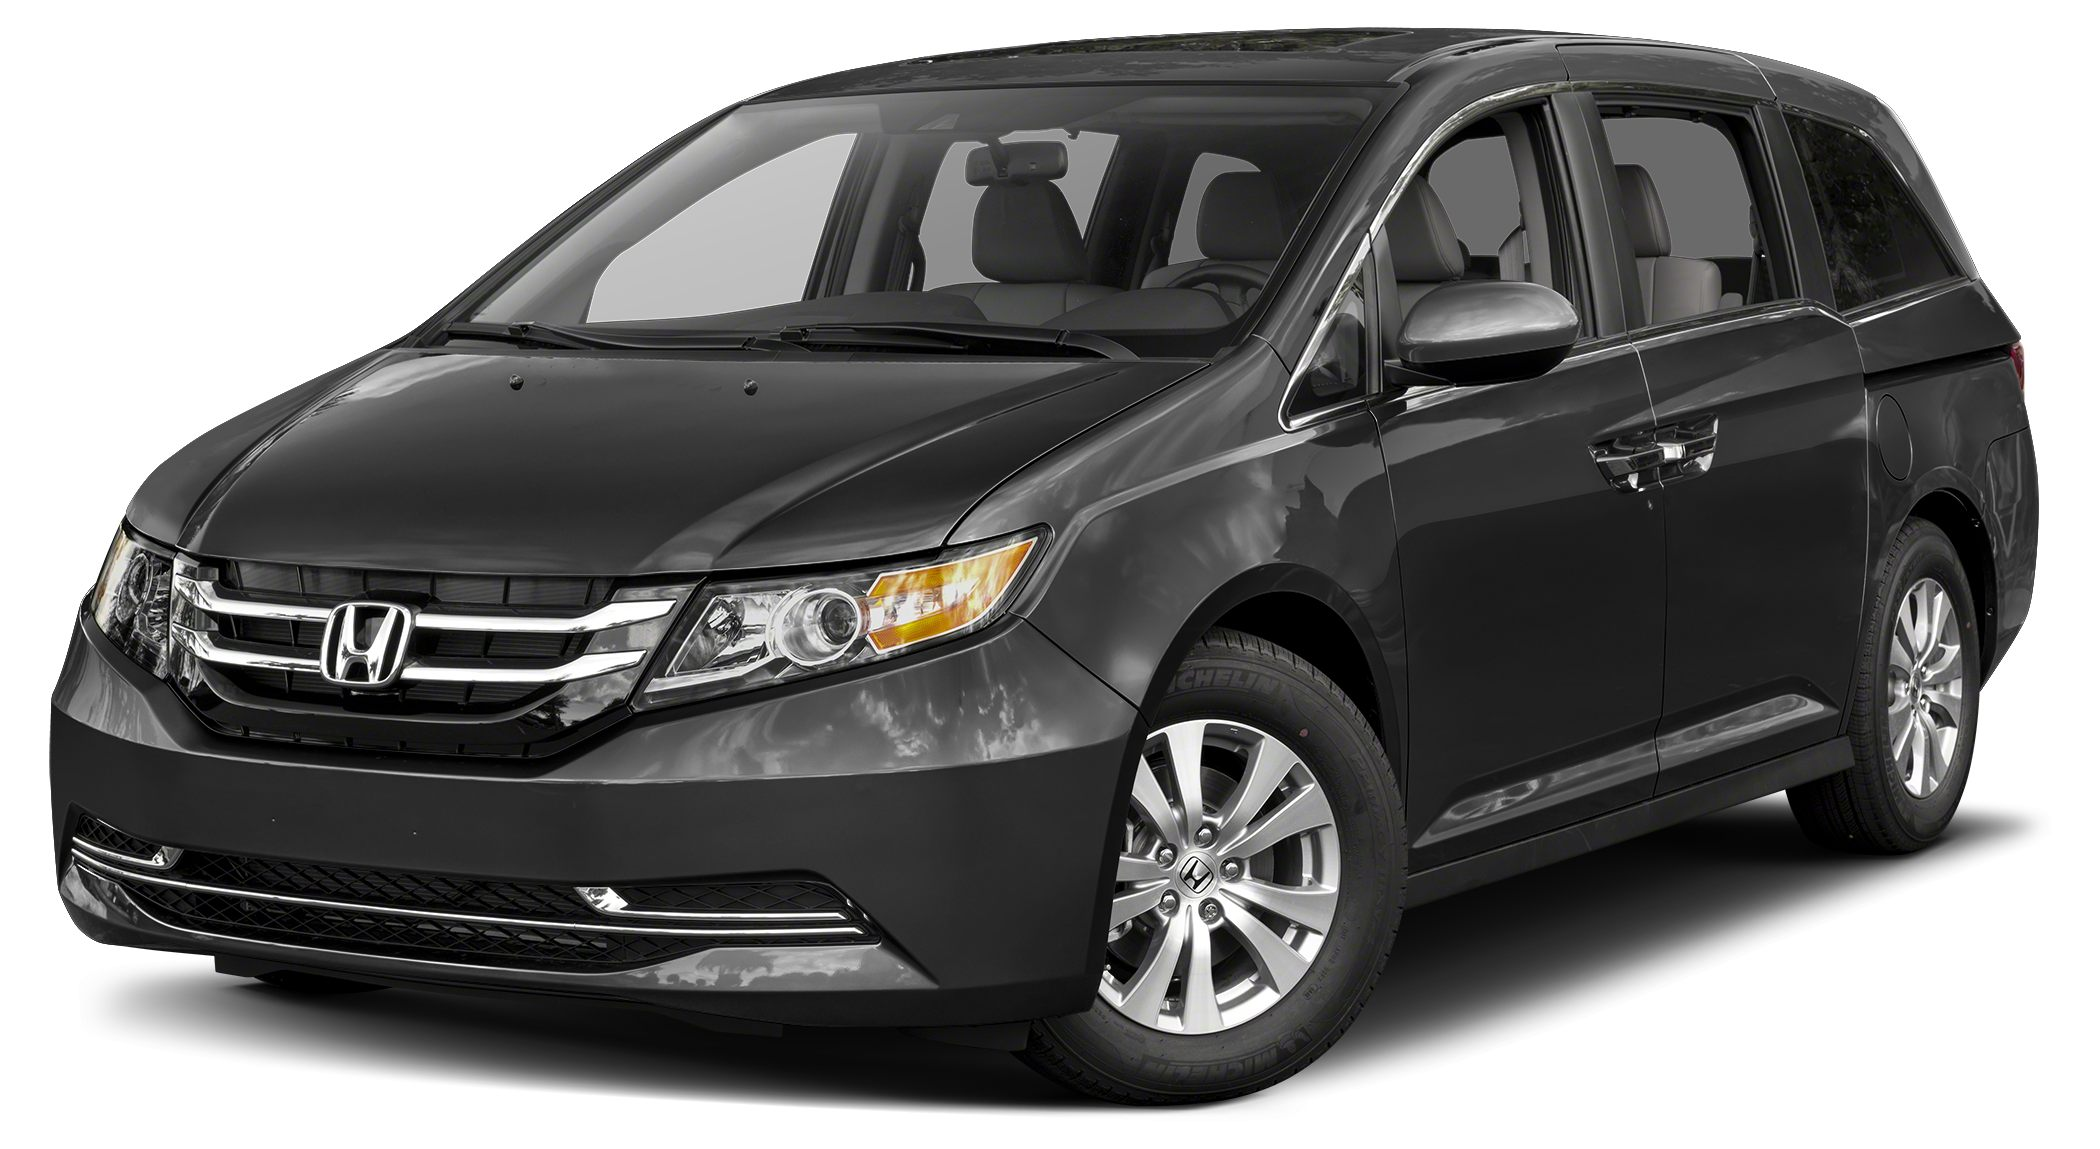 chrysler pacifica touring l vs honda odyssey ex l vs toyota sienna se 8 passenger. Black Bedroom Furniture Sets. Home Design Ideas